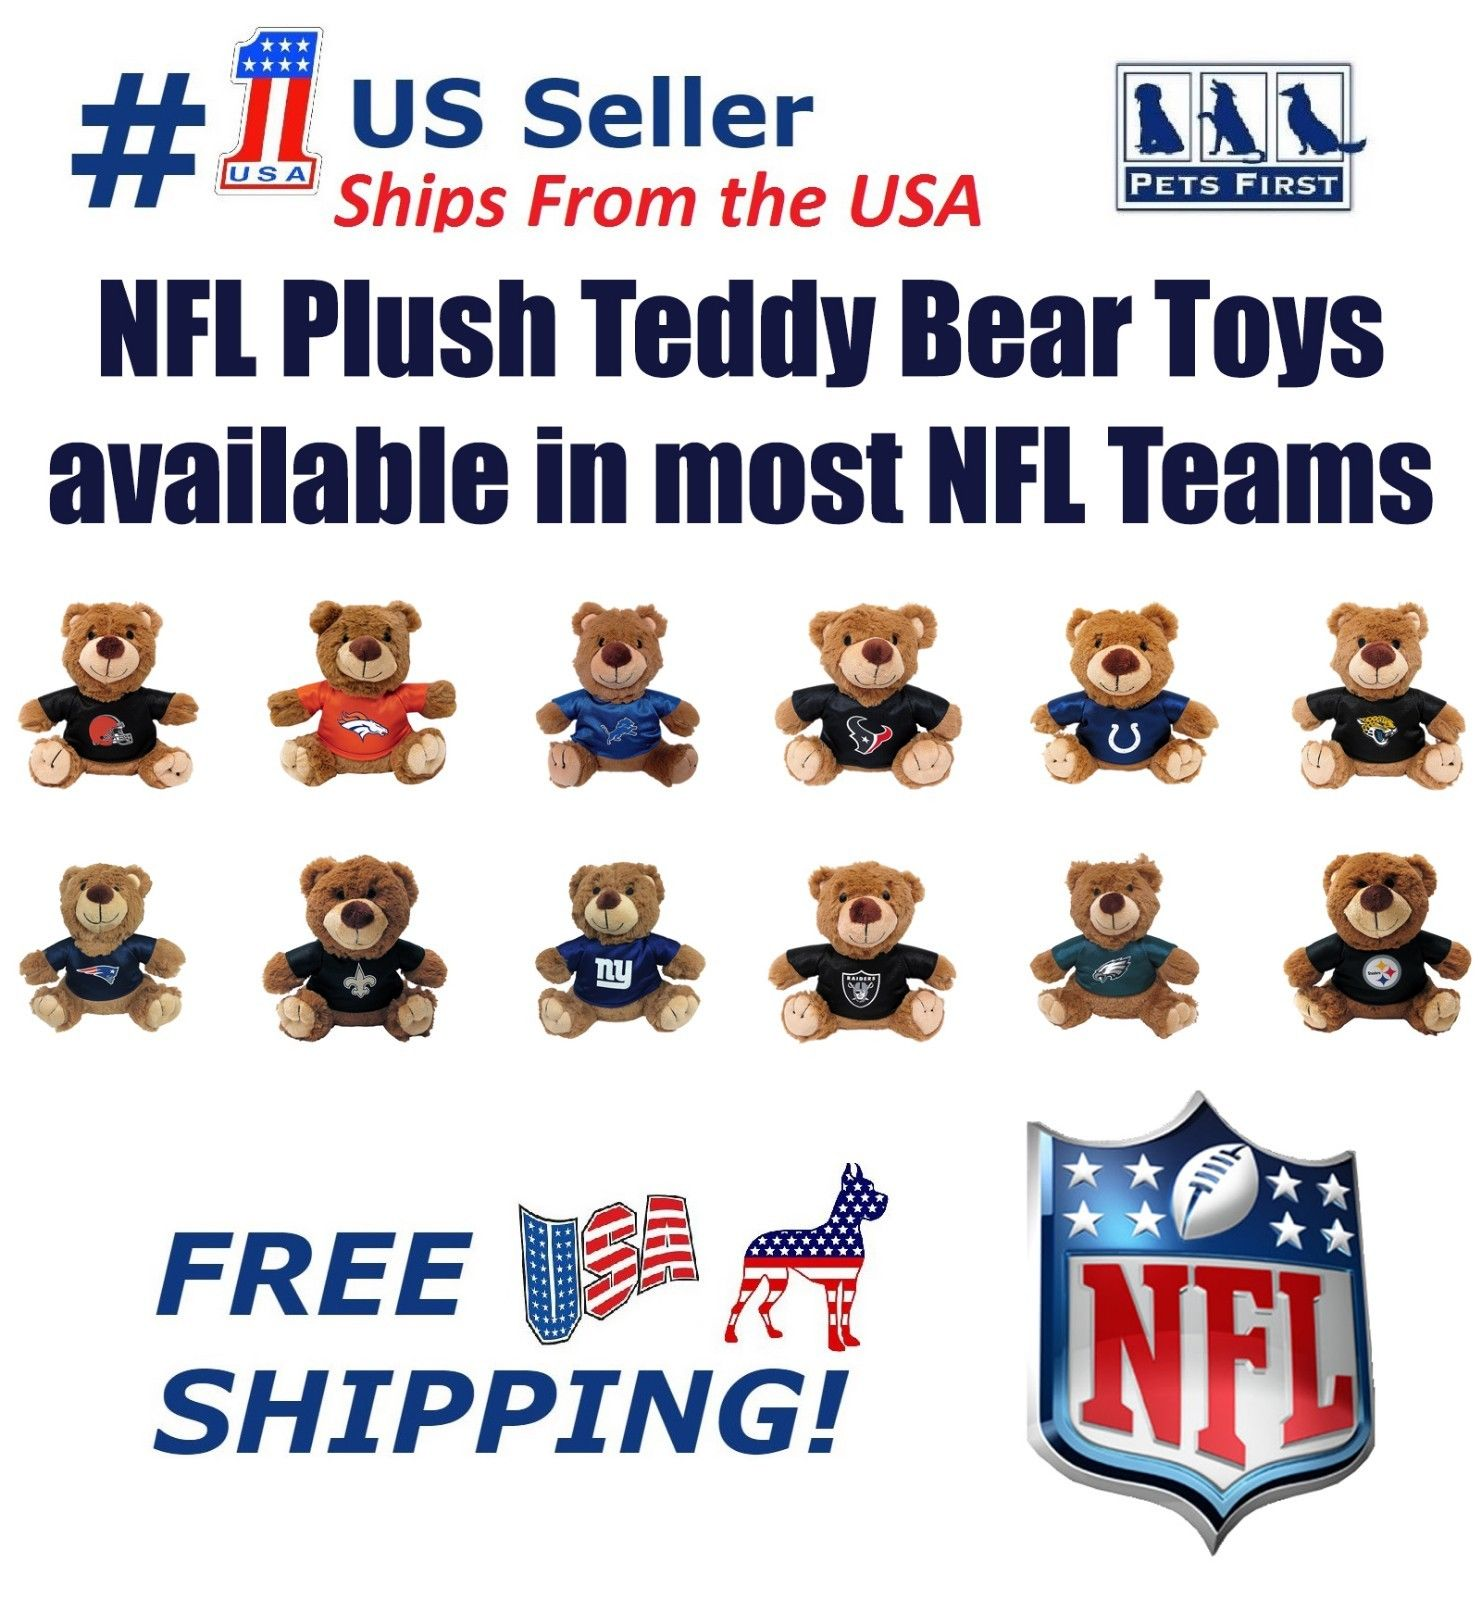 Pets First NFL Buffalo Bills Plush Teddy Bear Toy. Team Jersey & inner SQUEAKER. For Dogs/Cats/Kids/Home